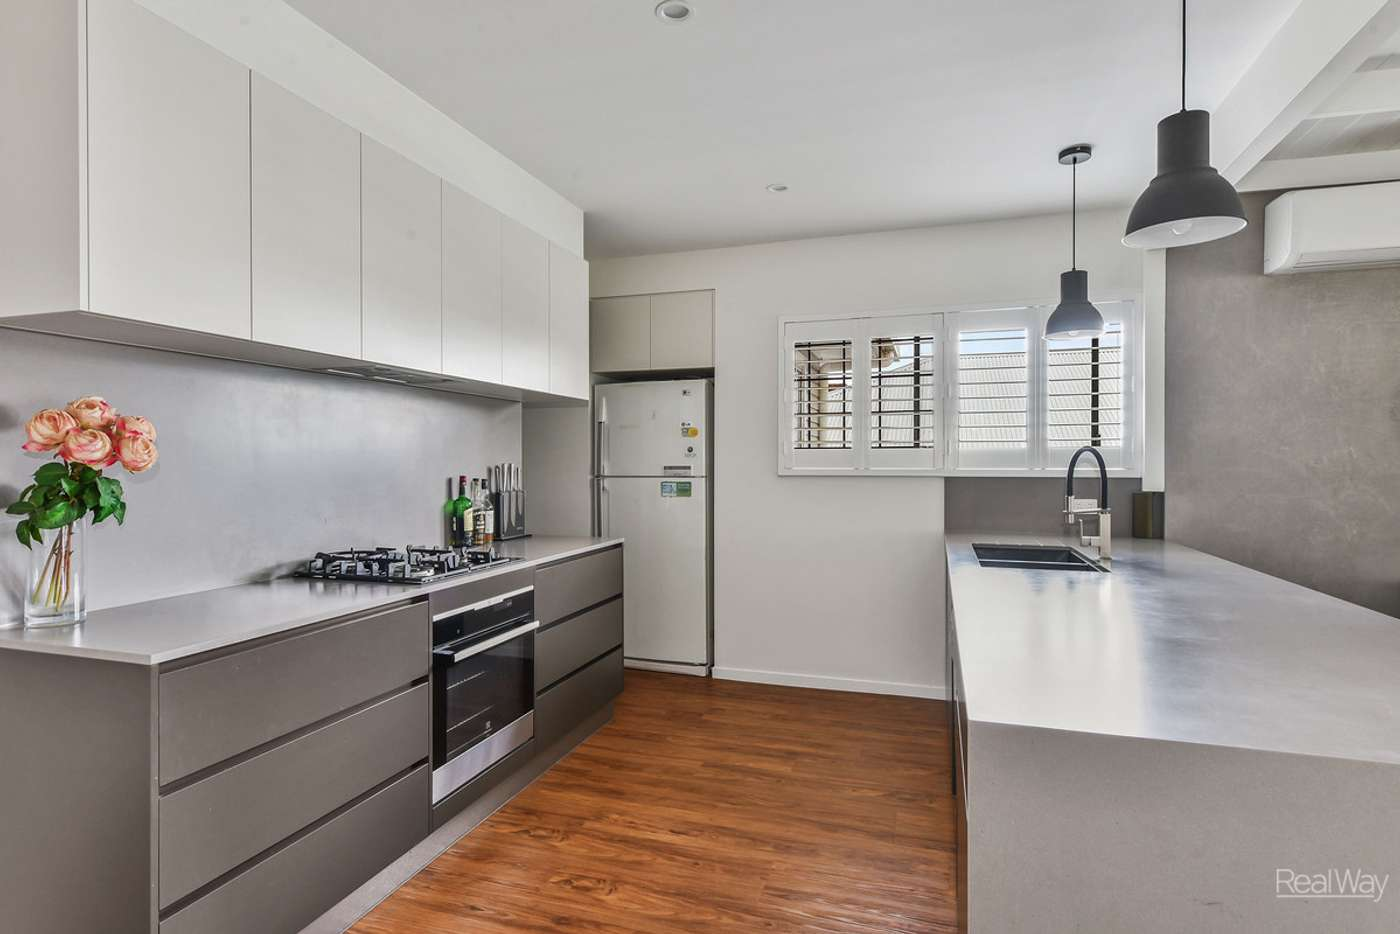 Sixth view of Homely house listing, 13 Mallon Street, Rangeville QLD 4350